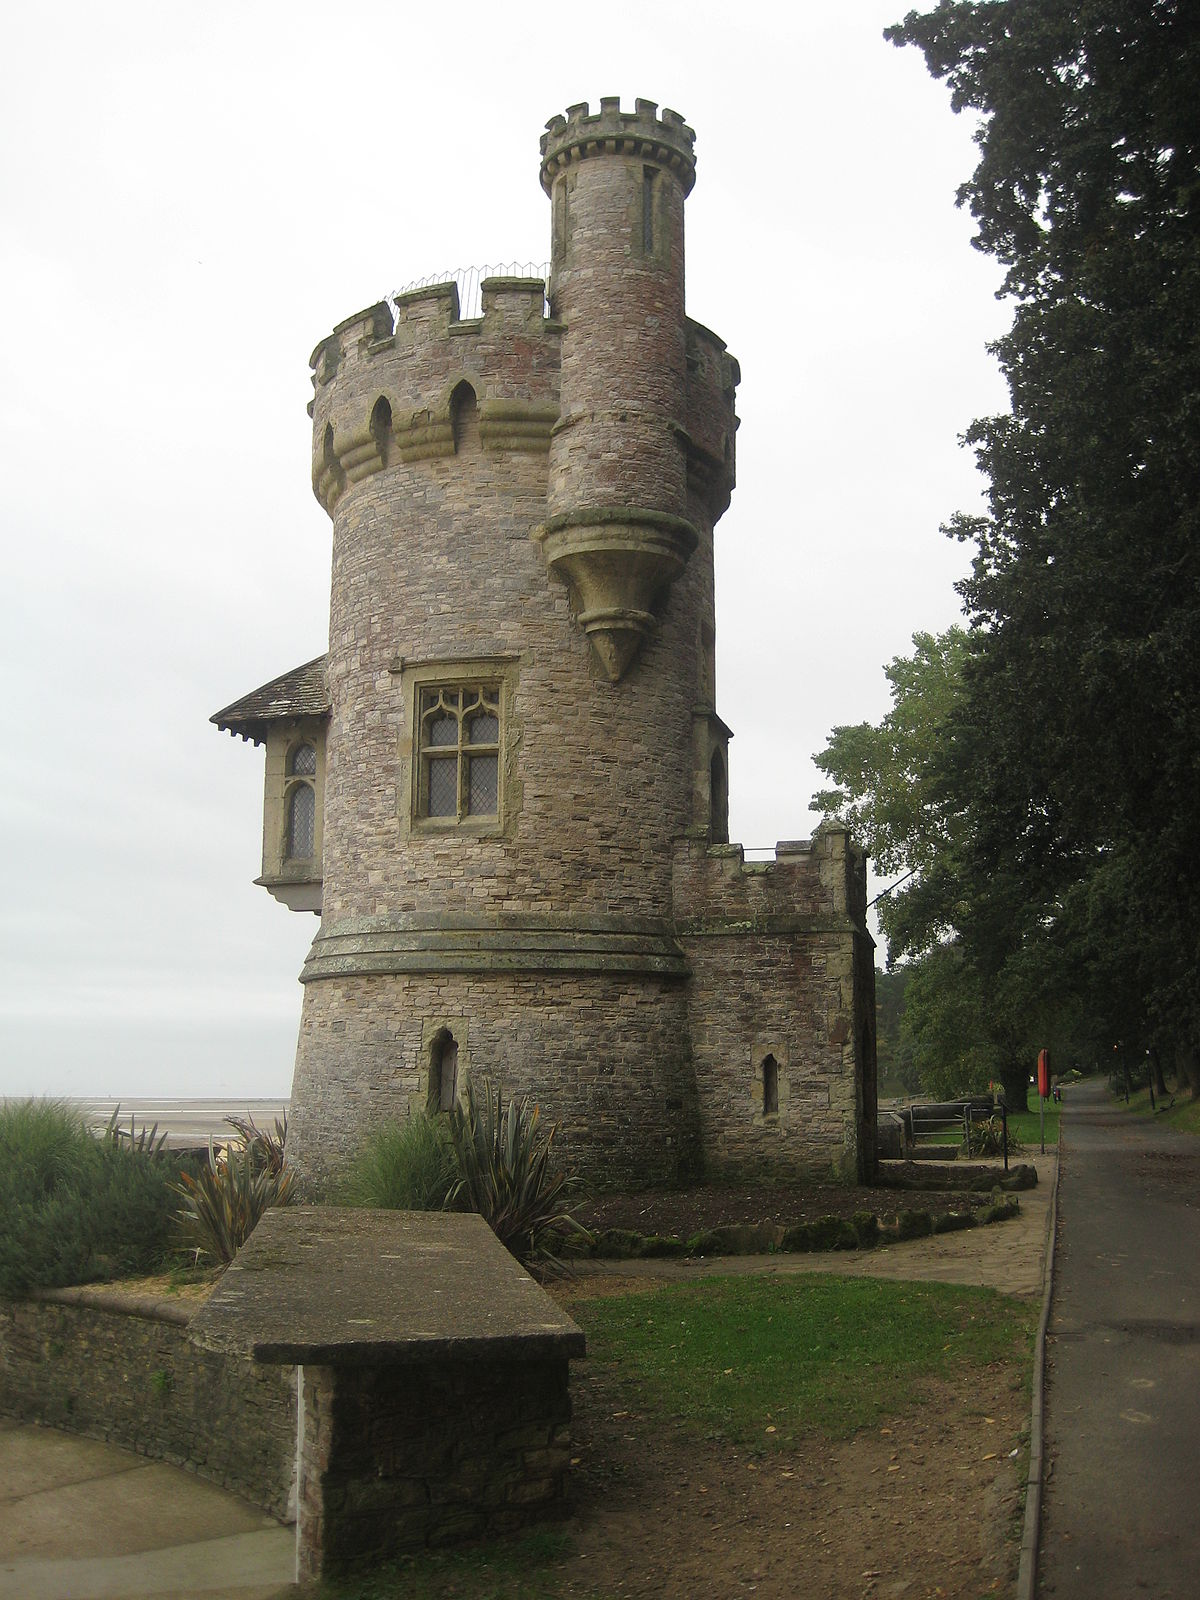 Appley Towers - Wikipedia